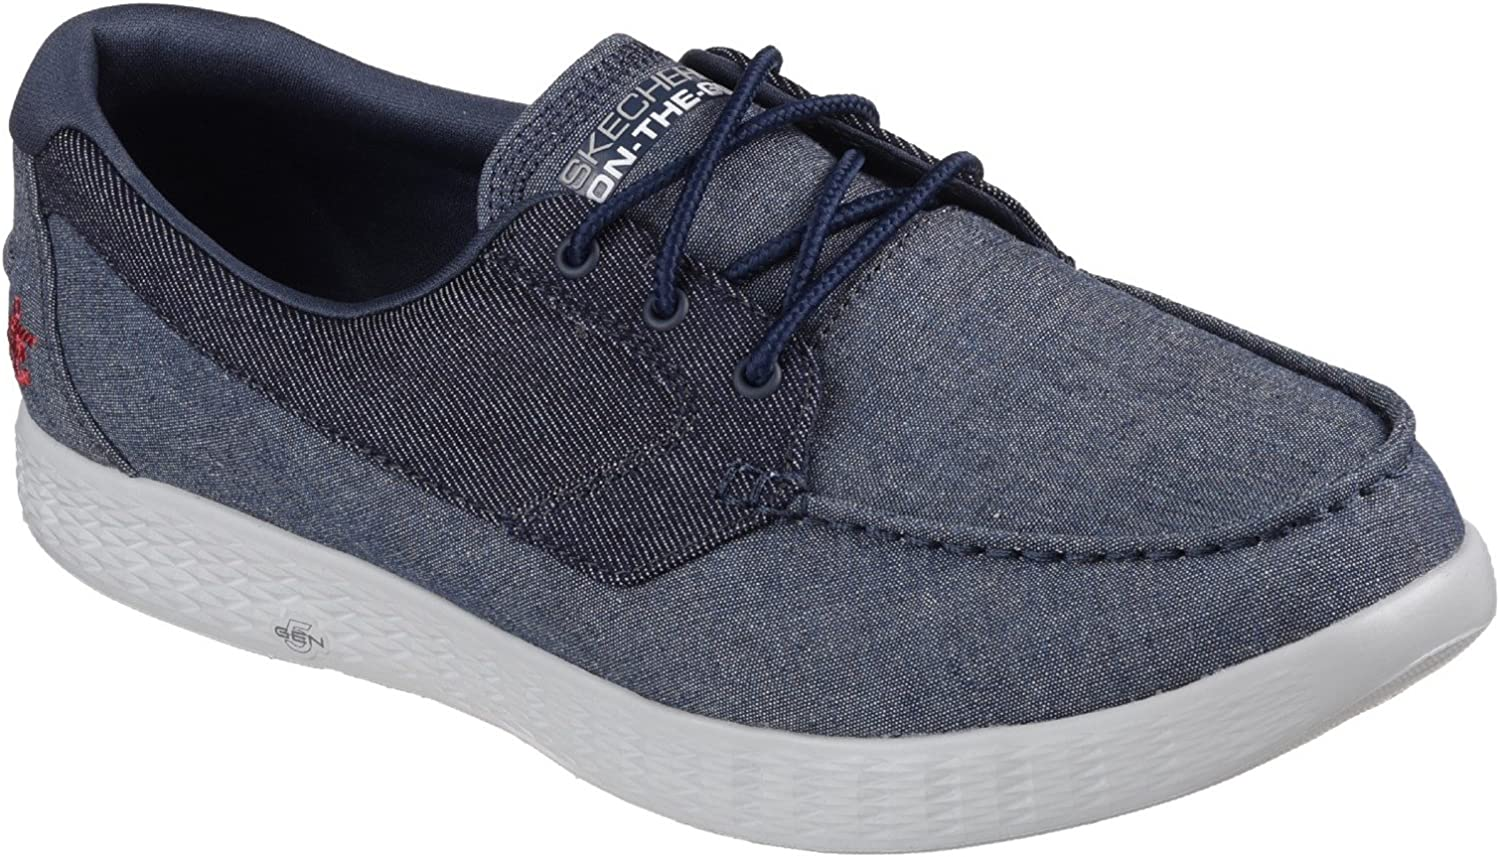 TALLA 41. Skechers Mens On The Go Glide Coastline Cushioned Casual Boat Shoes